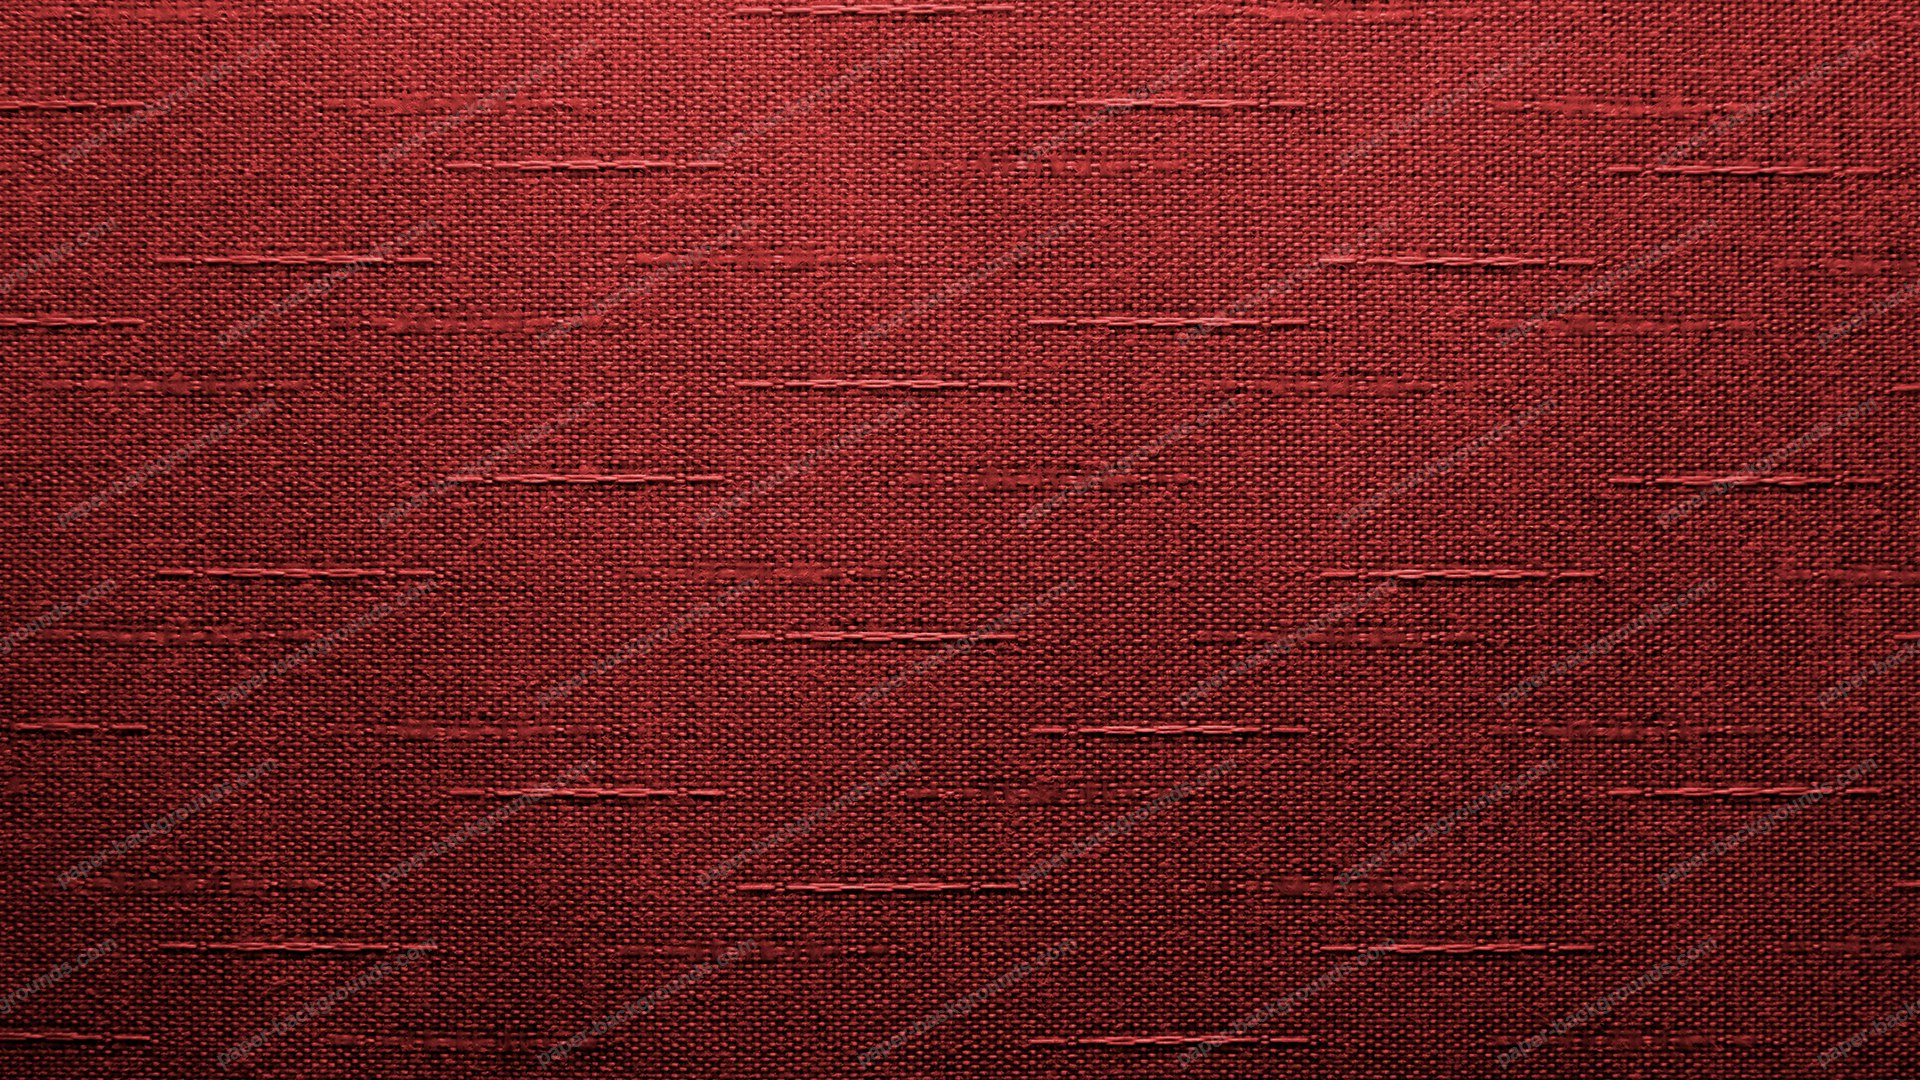 red textured background hd - photo #21